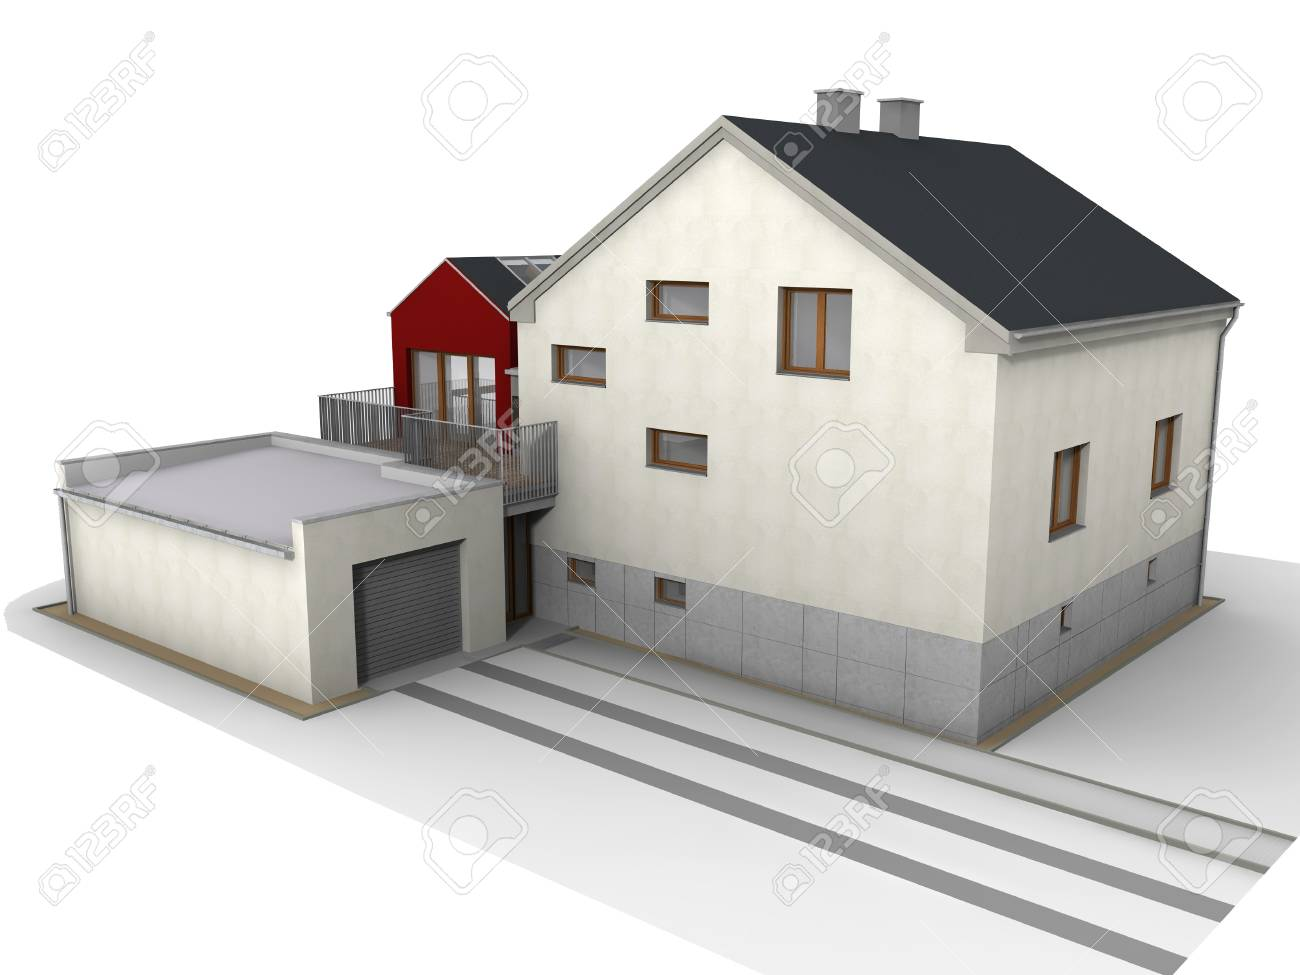 Modern family house design rendered structure Stock Photo - 15684891